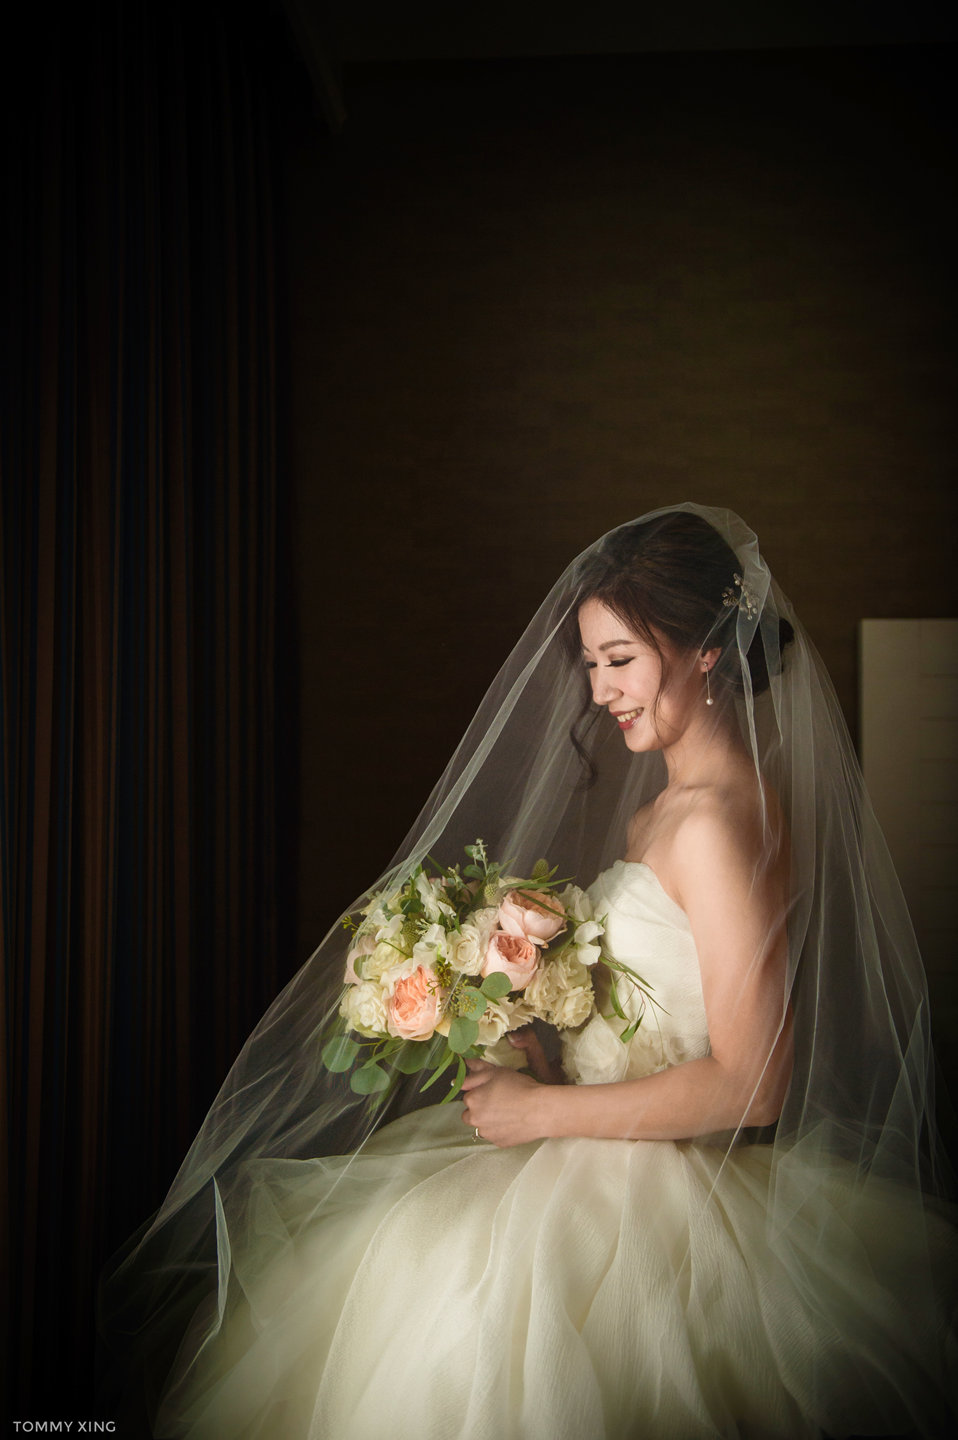 Wayfarers chapel Wedding Photography Ranho Palos Verdes Tommy Xing Photography 洛杉矶玻璃教堂婚礼婚纱照摄影师071.jpg